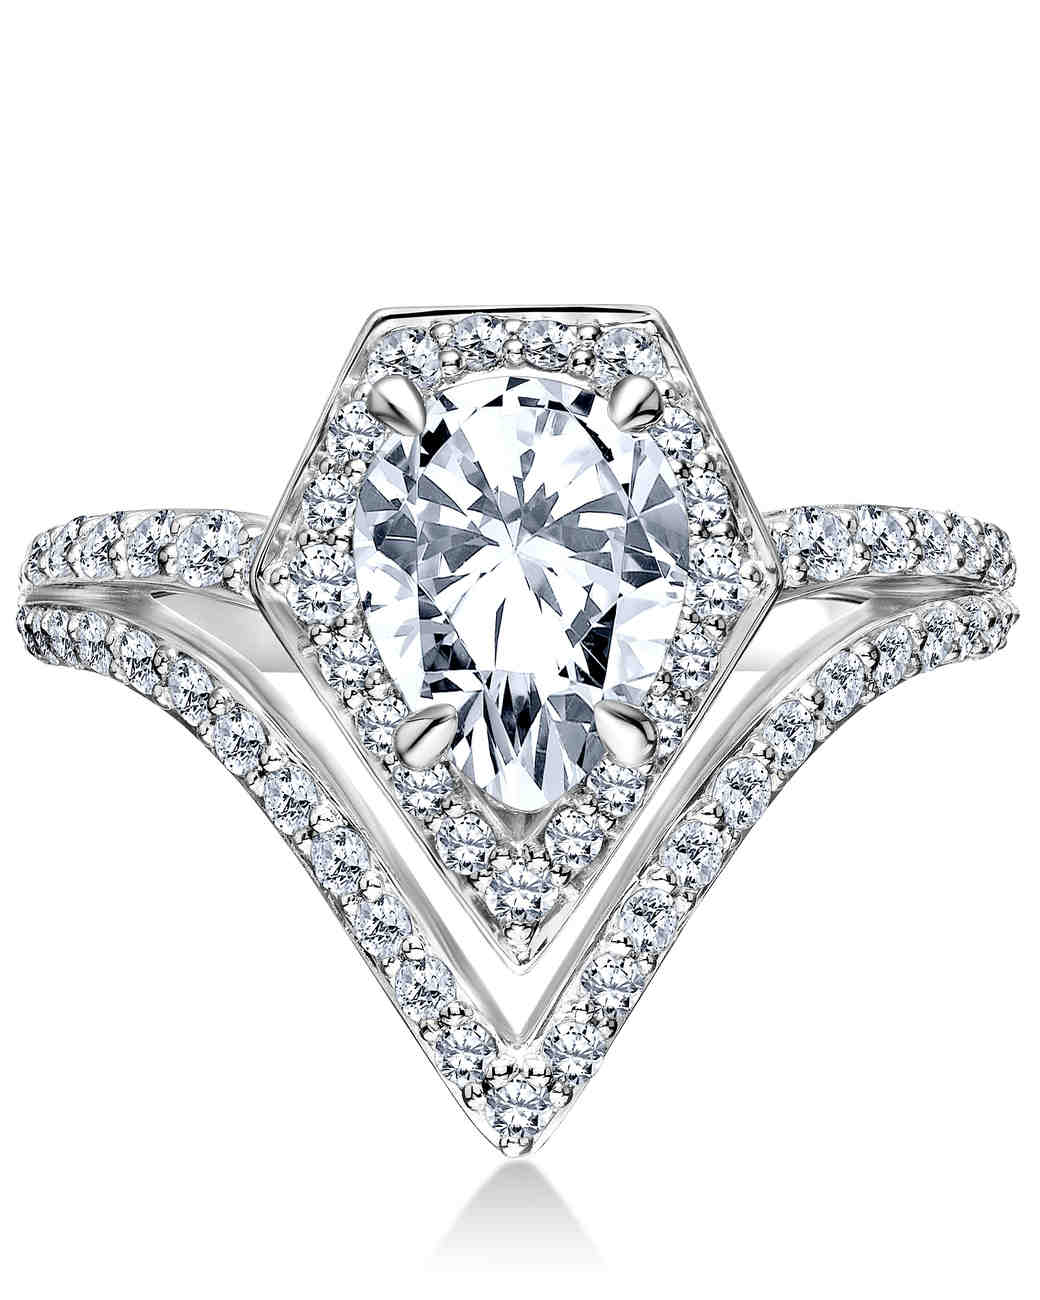 Karl Lagerfeld Pear-Cut Engagement Ring